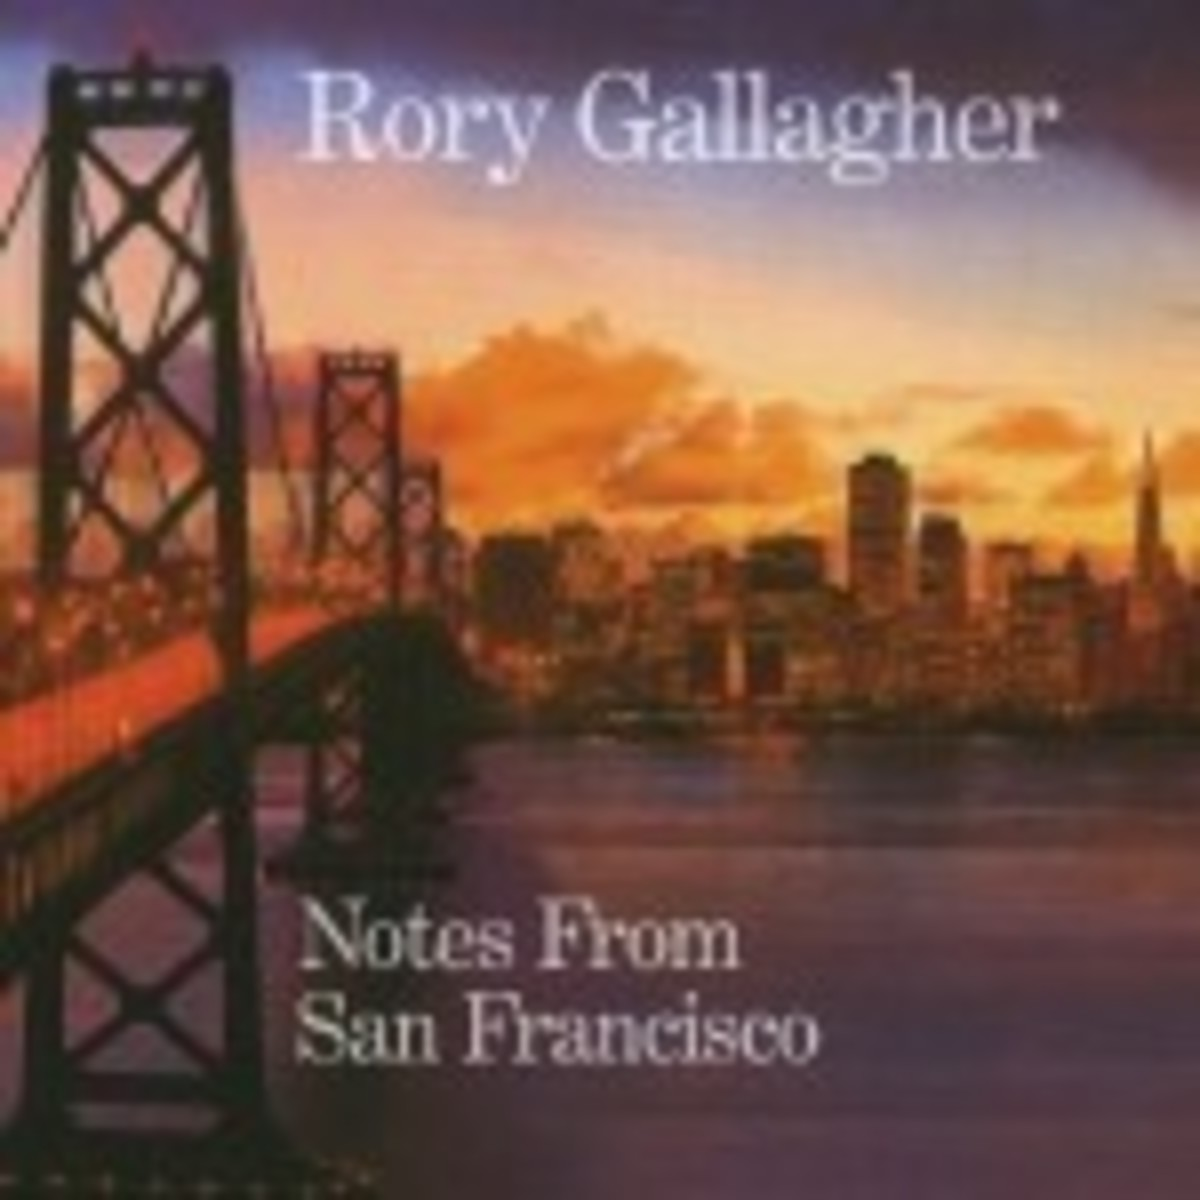 RoryGallagher_NotesFromSanFrancisco